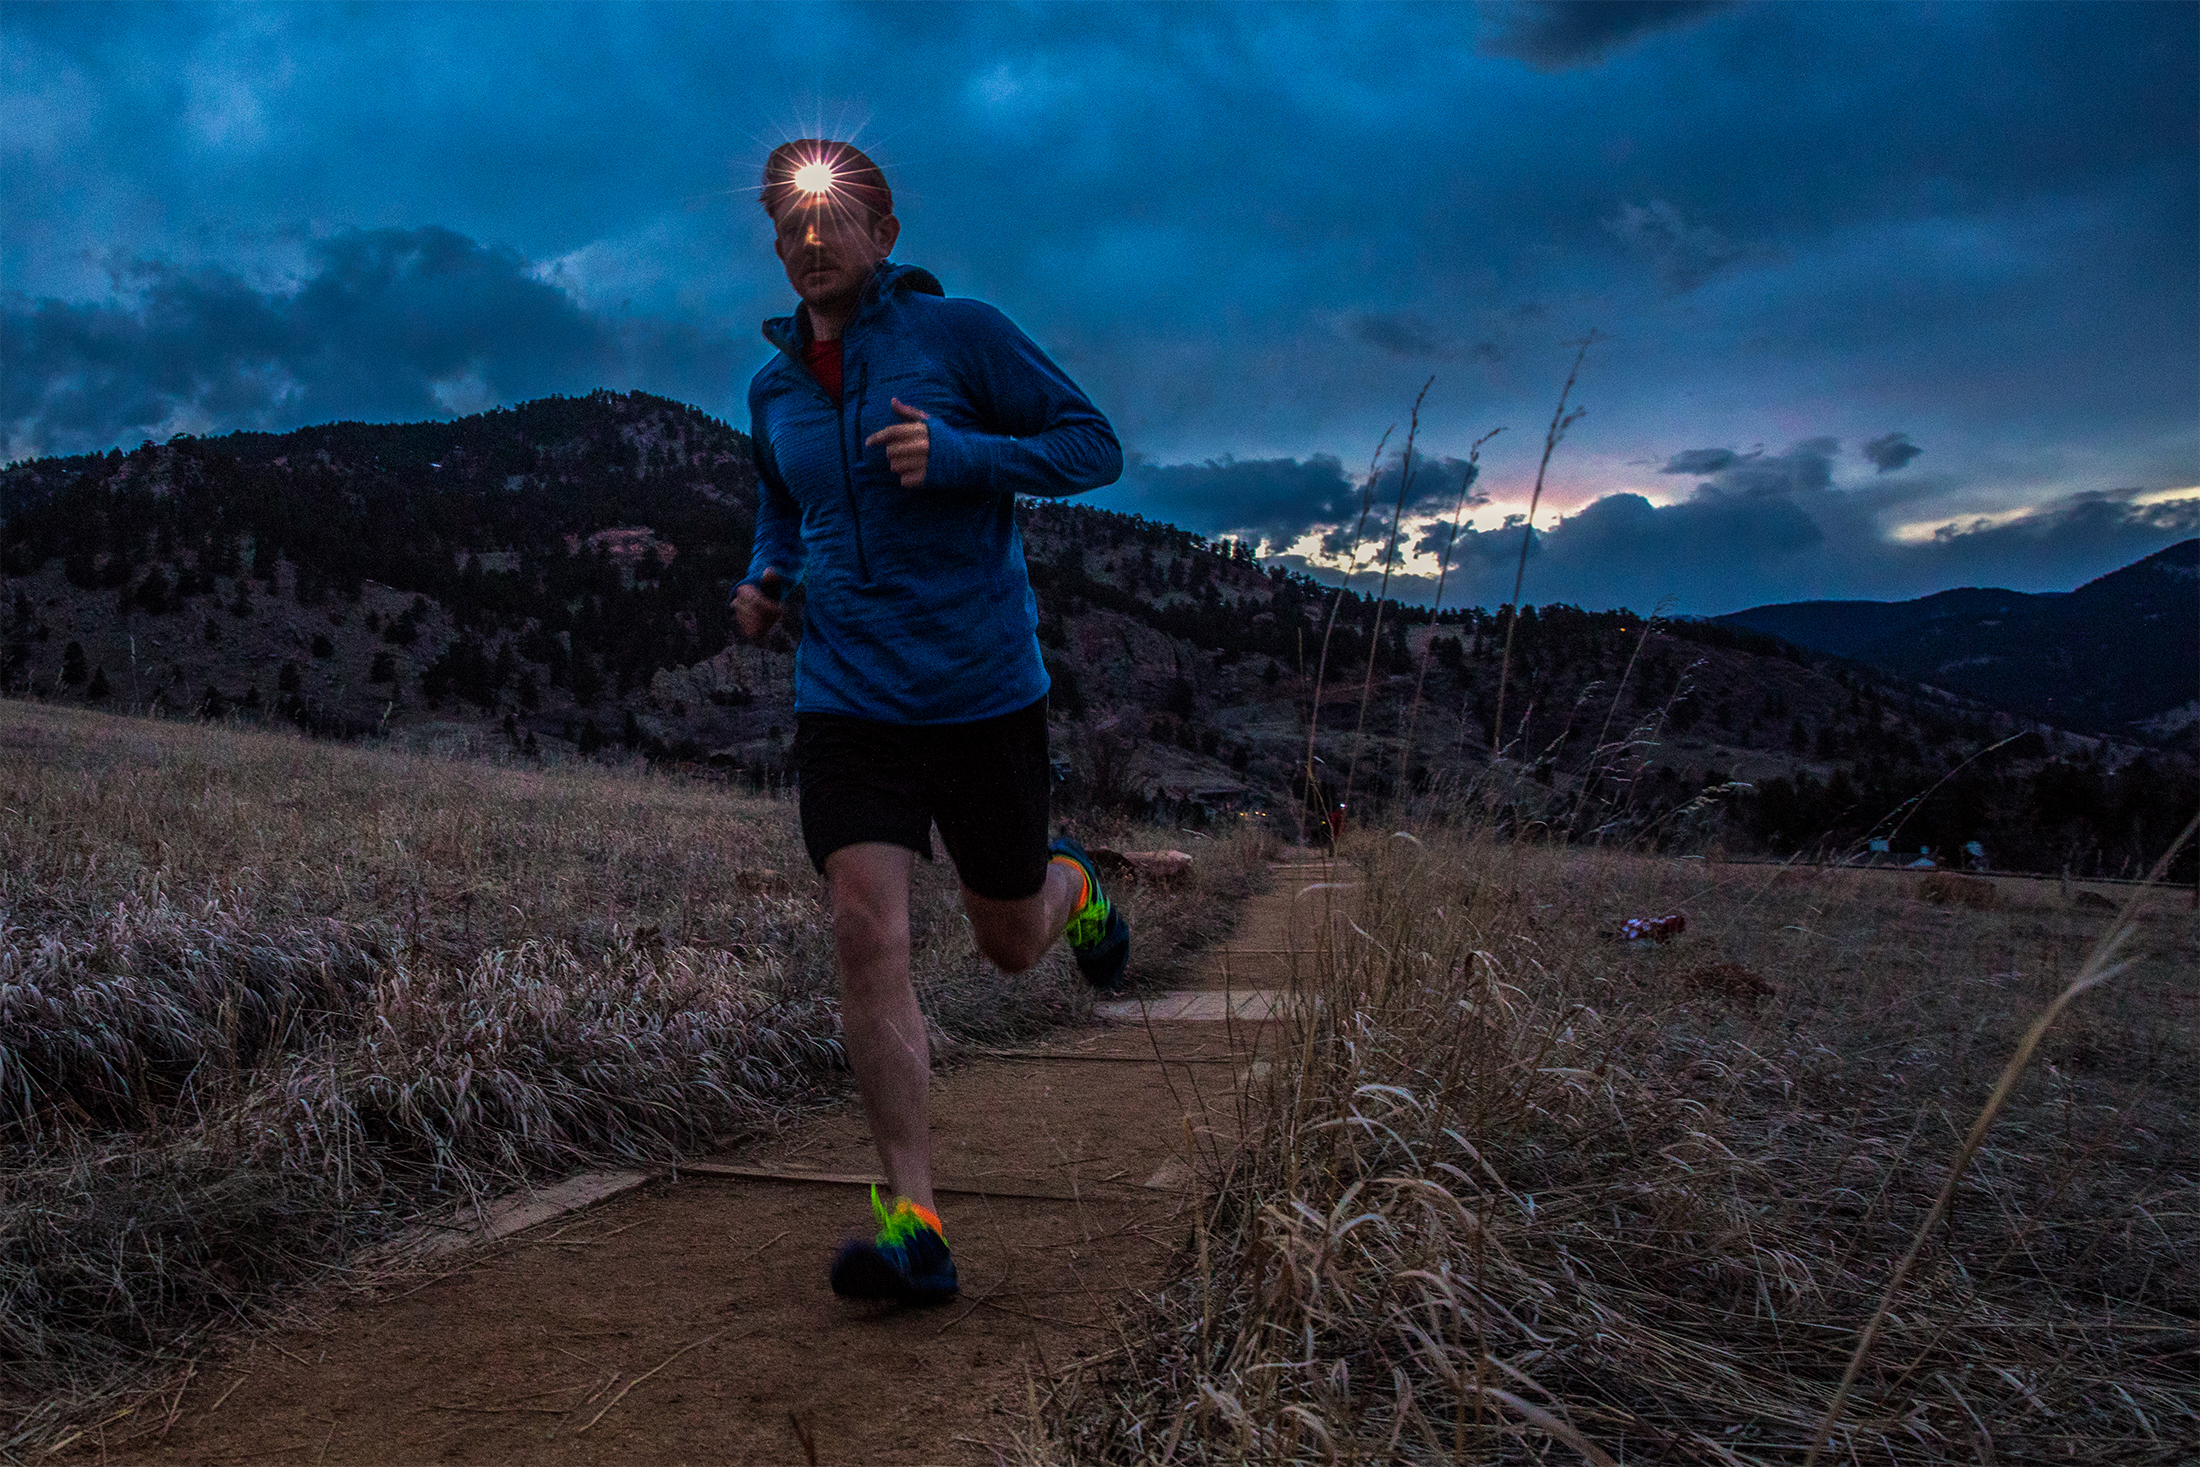 Trail runner wearing the BioLite Headlamp 330